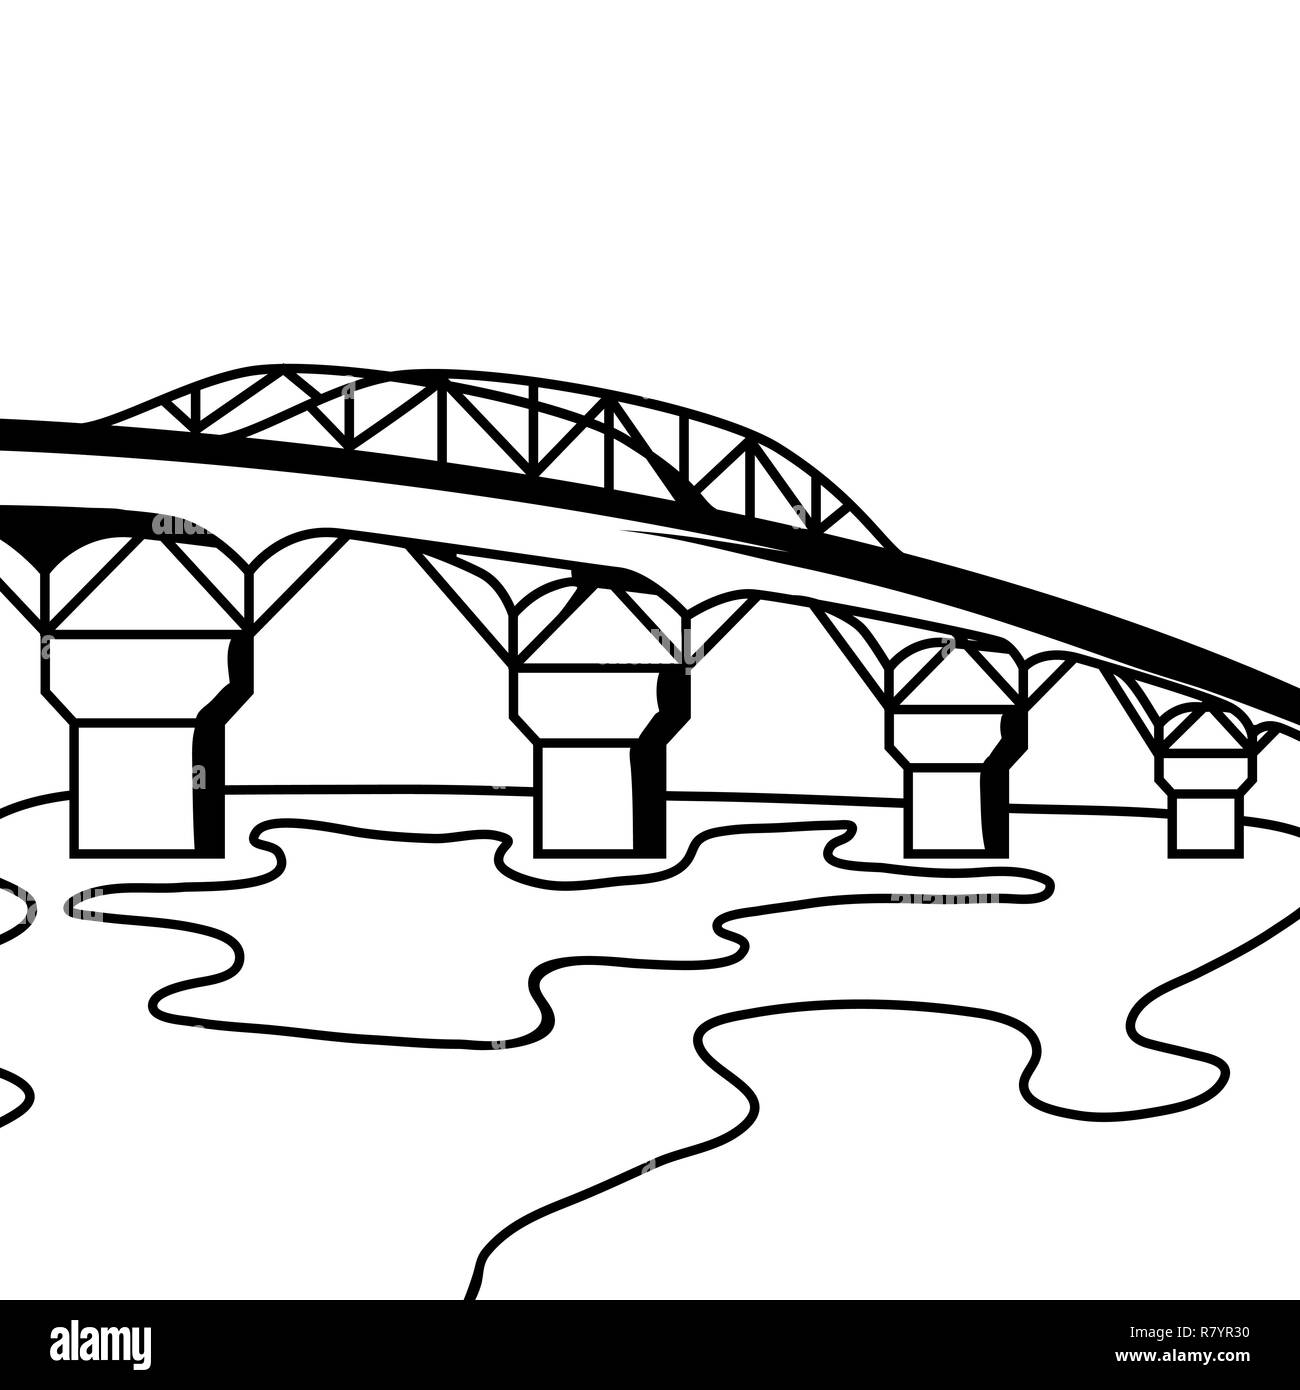 Black and white bridge. - Stock Vector